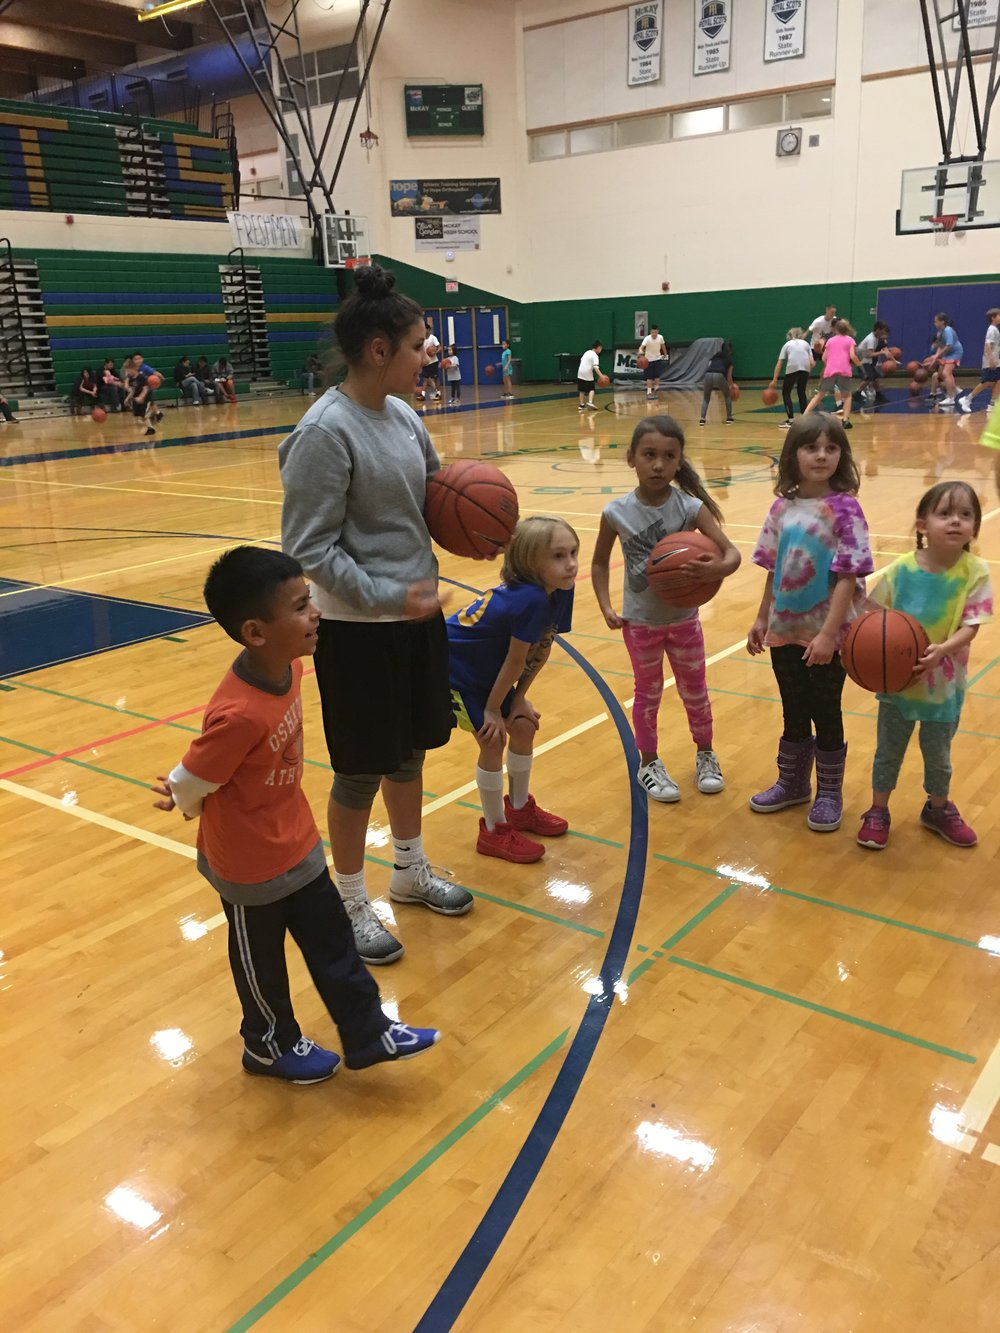 2017 - Leva volunteering at Salem Hoops Project. Photo by David Espinoza